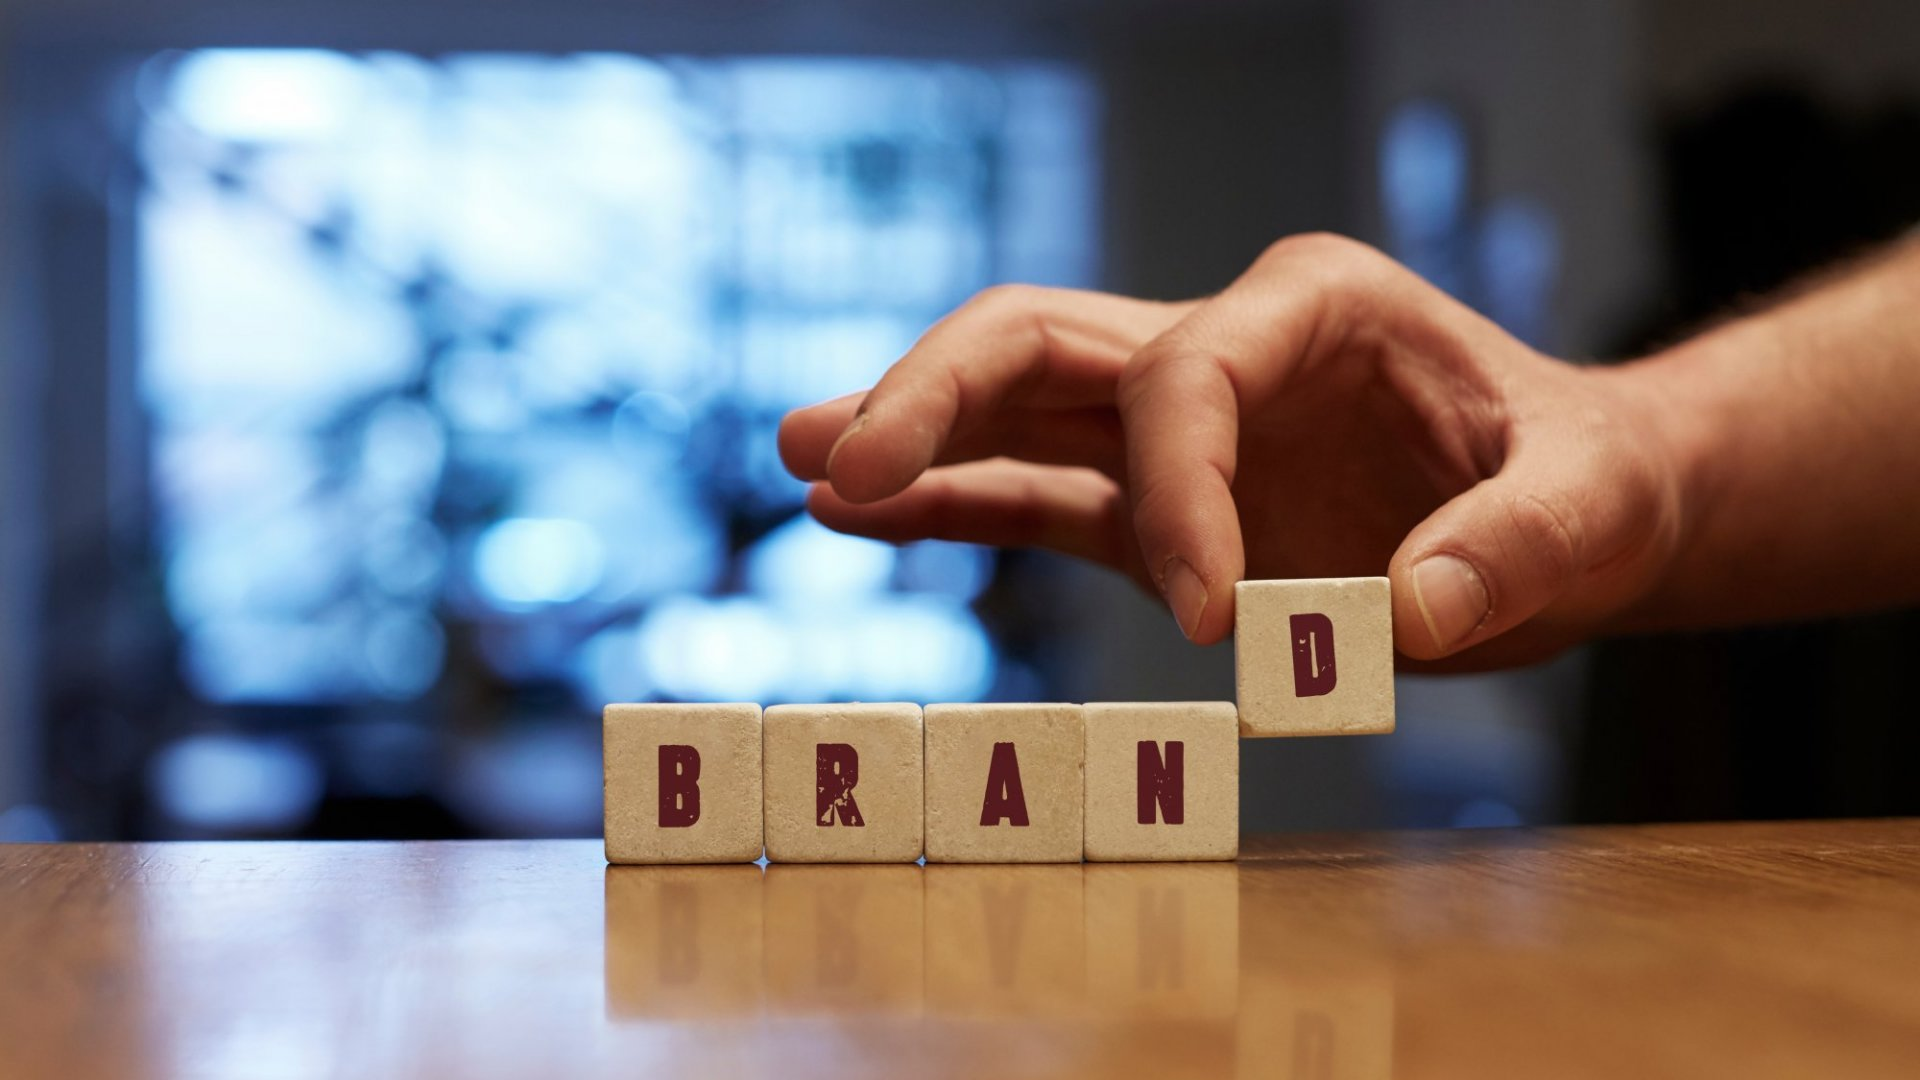 What the Smartest CEOs Know About Building Their Personal Brand (Hint: They Know What Leadership Style They Are)